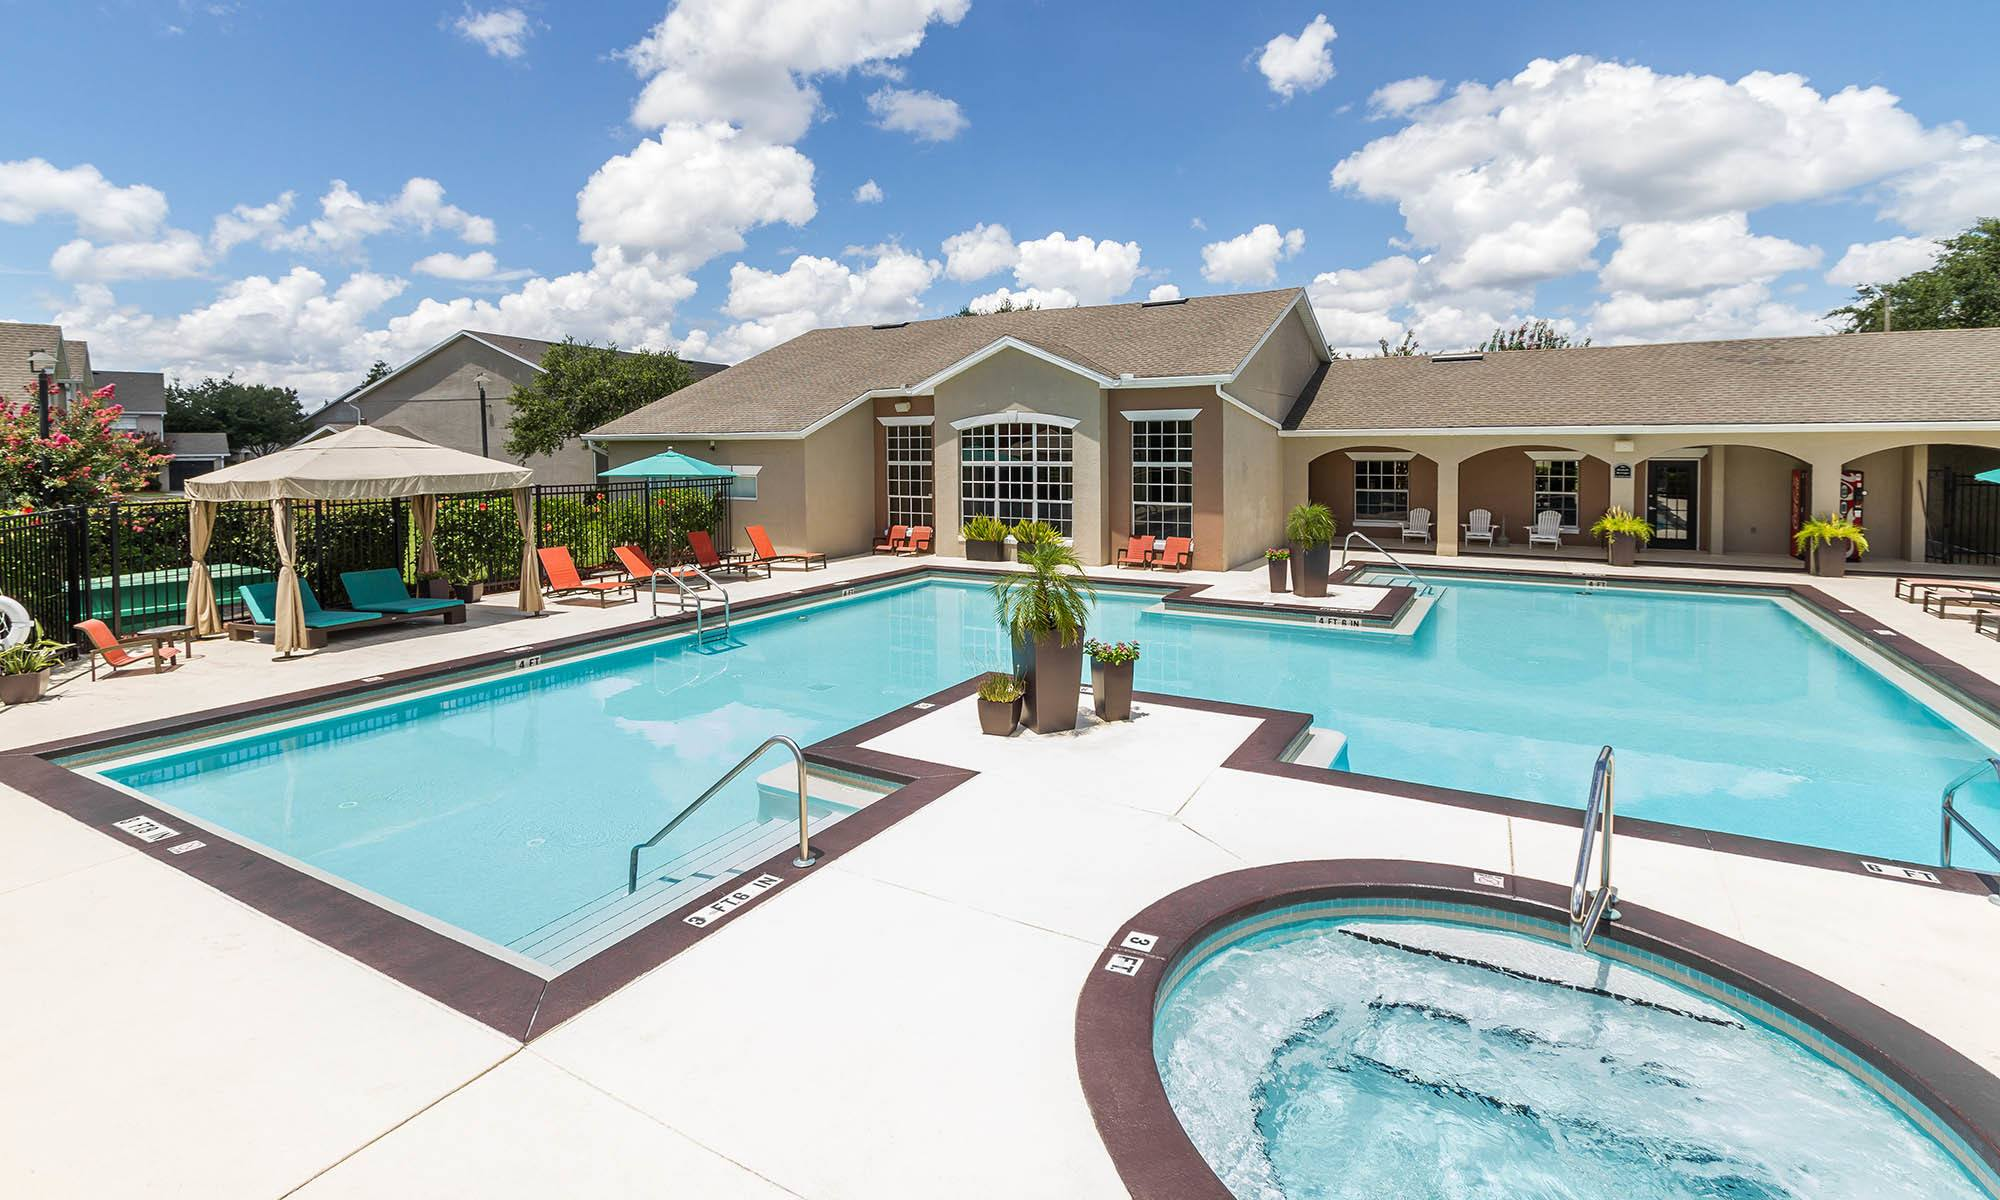 Enjoy the swimming pool at Highpoint Club Apartments in Orlando, FL